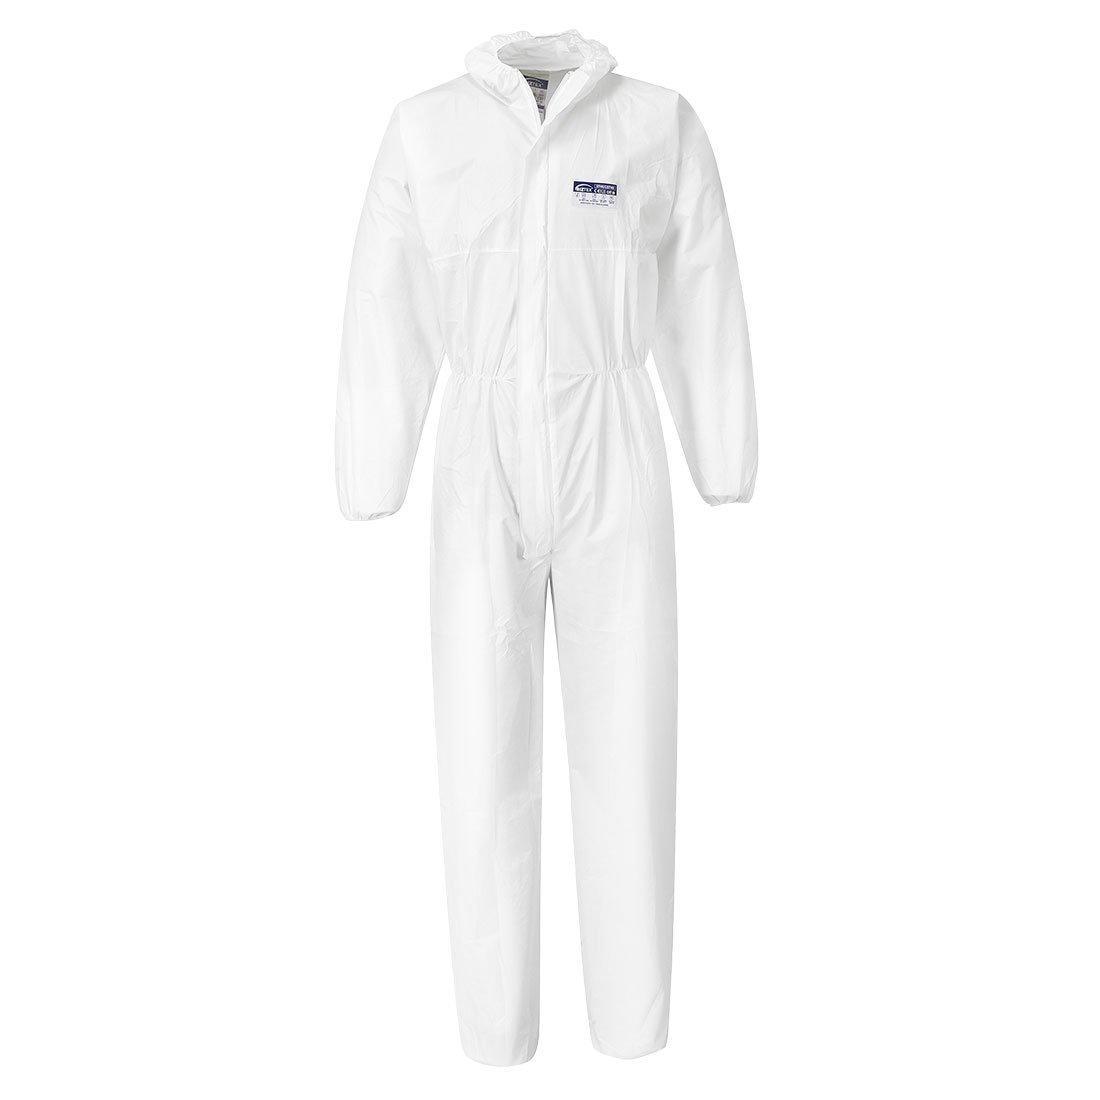 Coverall PP/PE 65g (50pcs), White      Size Large R/Fit